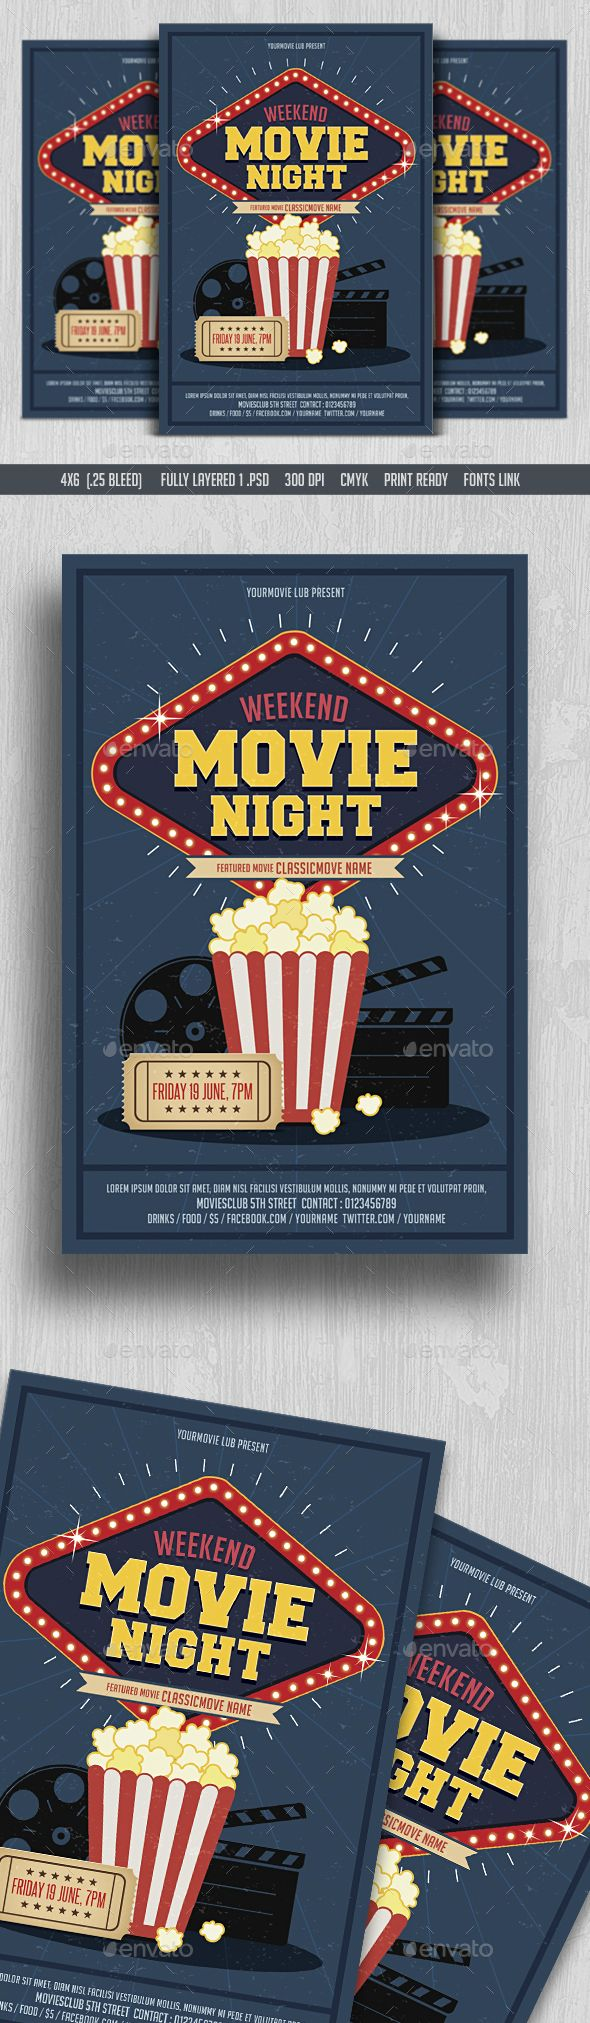 Movie Night Flyer Template PSD. Download here: https://graphicriver.net/item/movie-night-flyer/16991857?ref=ksioks